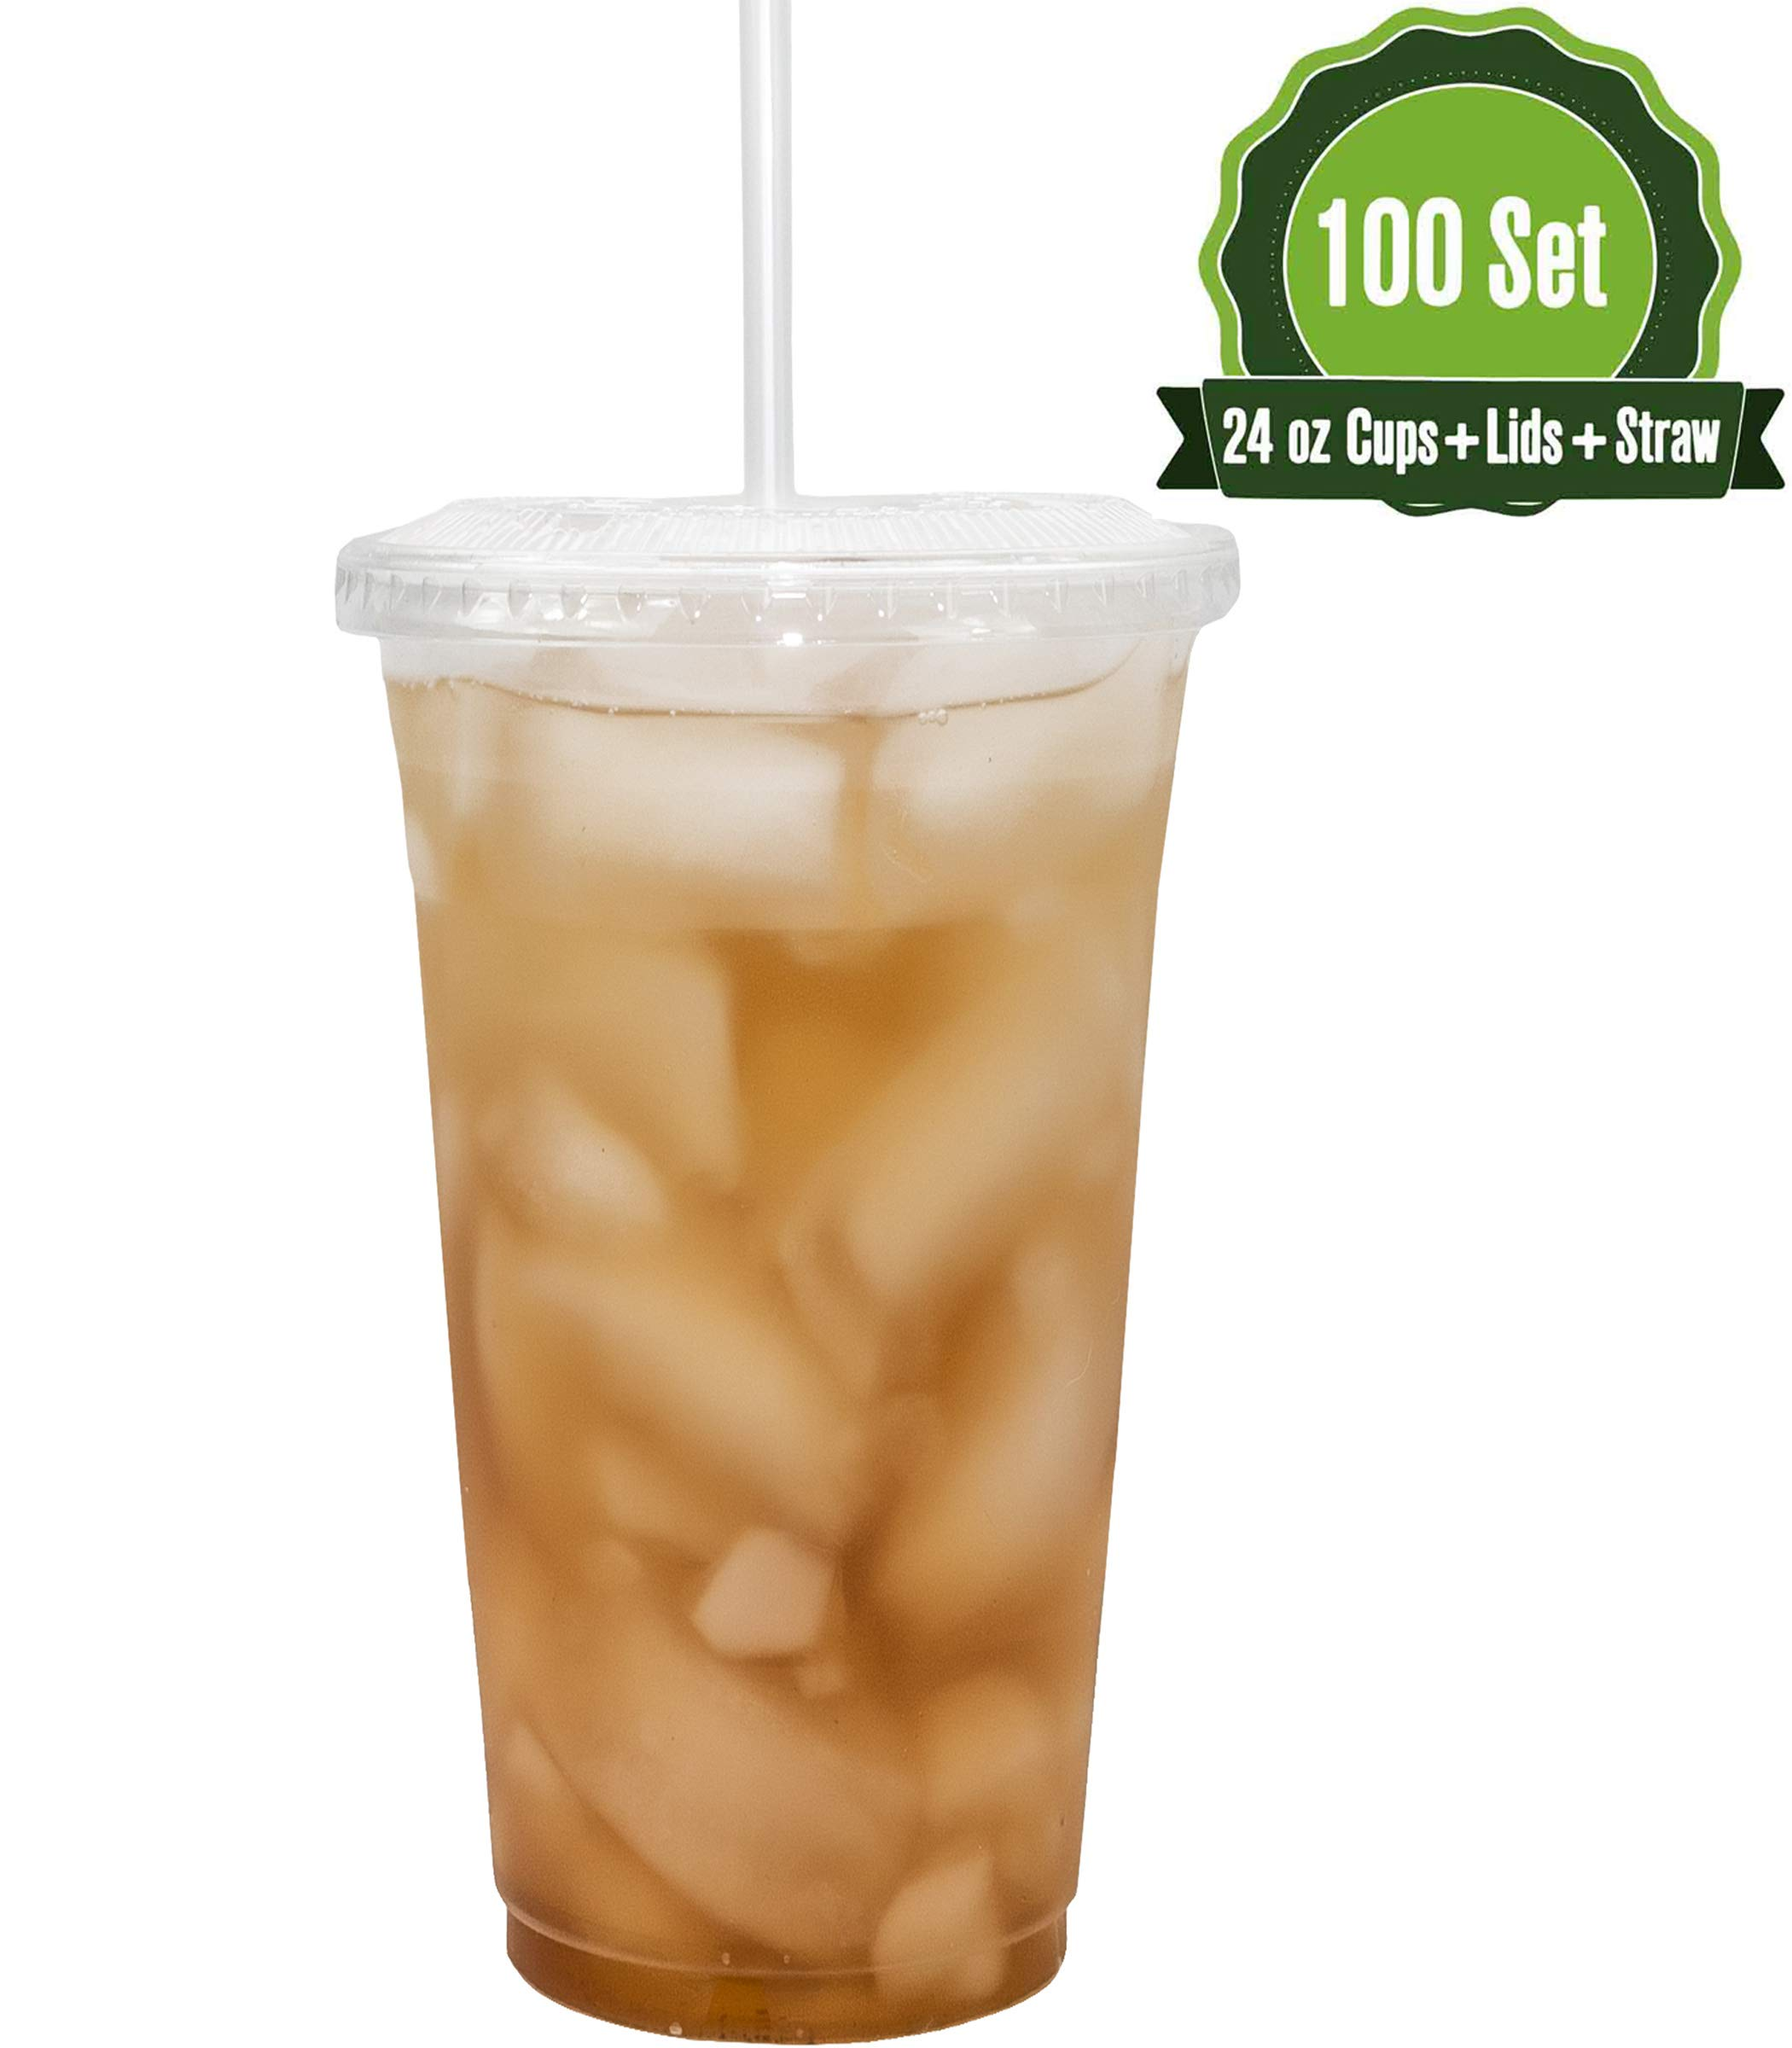 24oz Clear Plastic Cups with Flat Lids and Straws (100 Set)